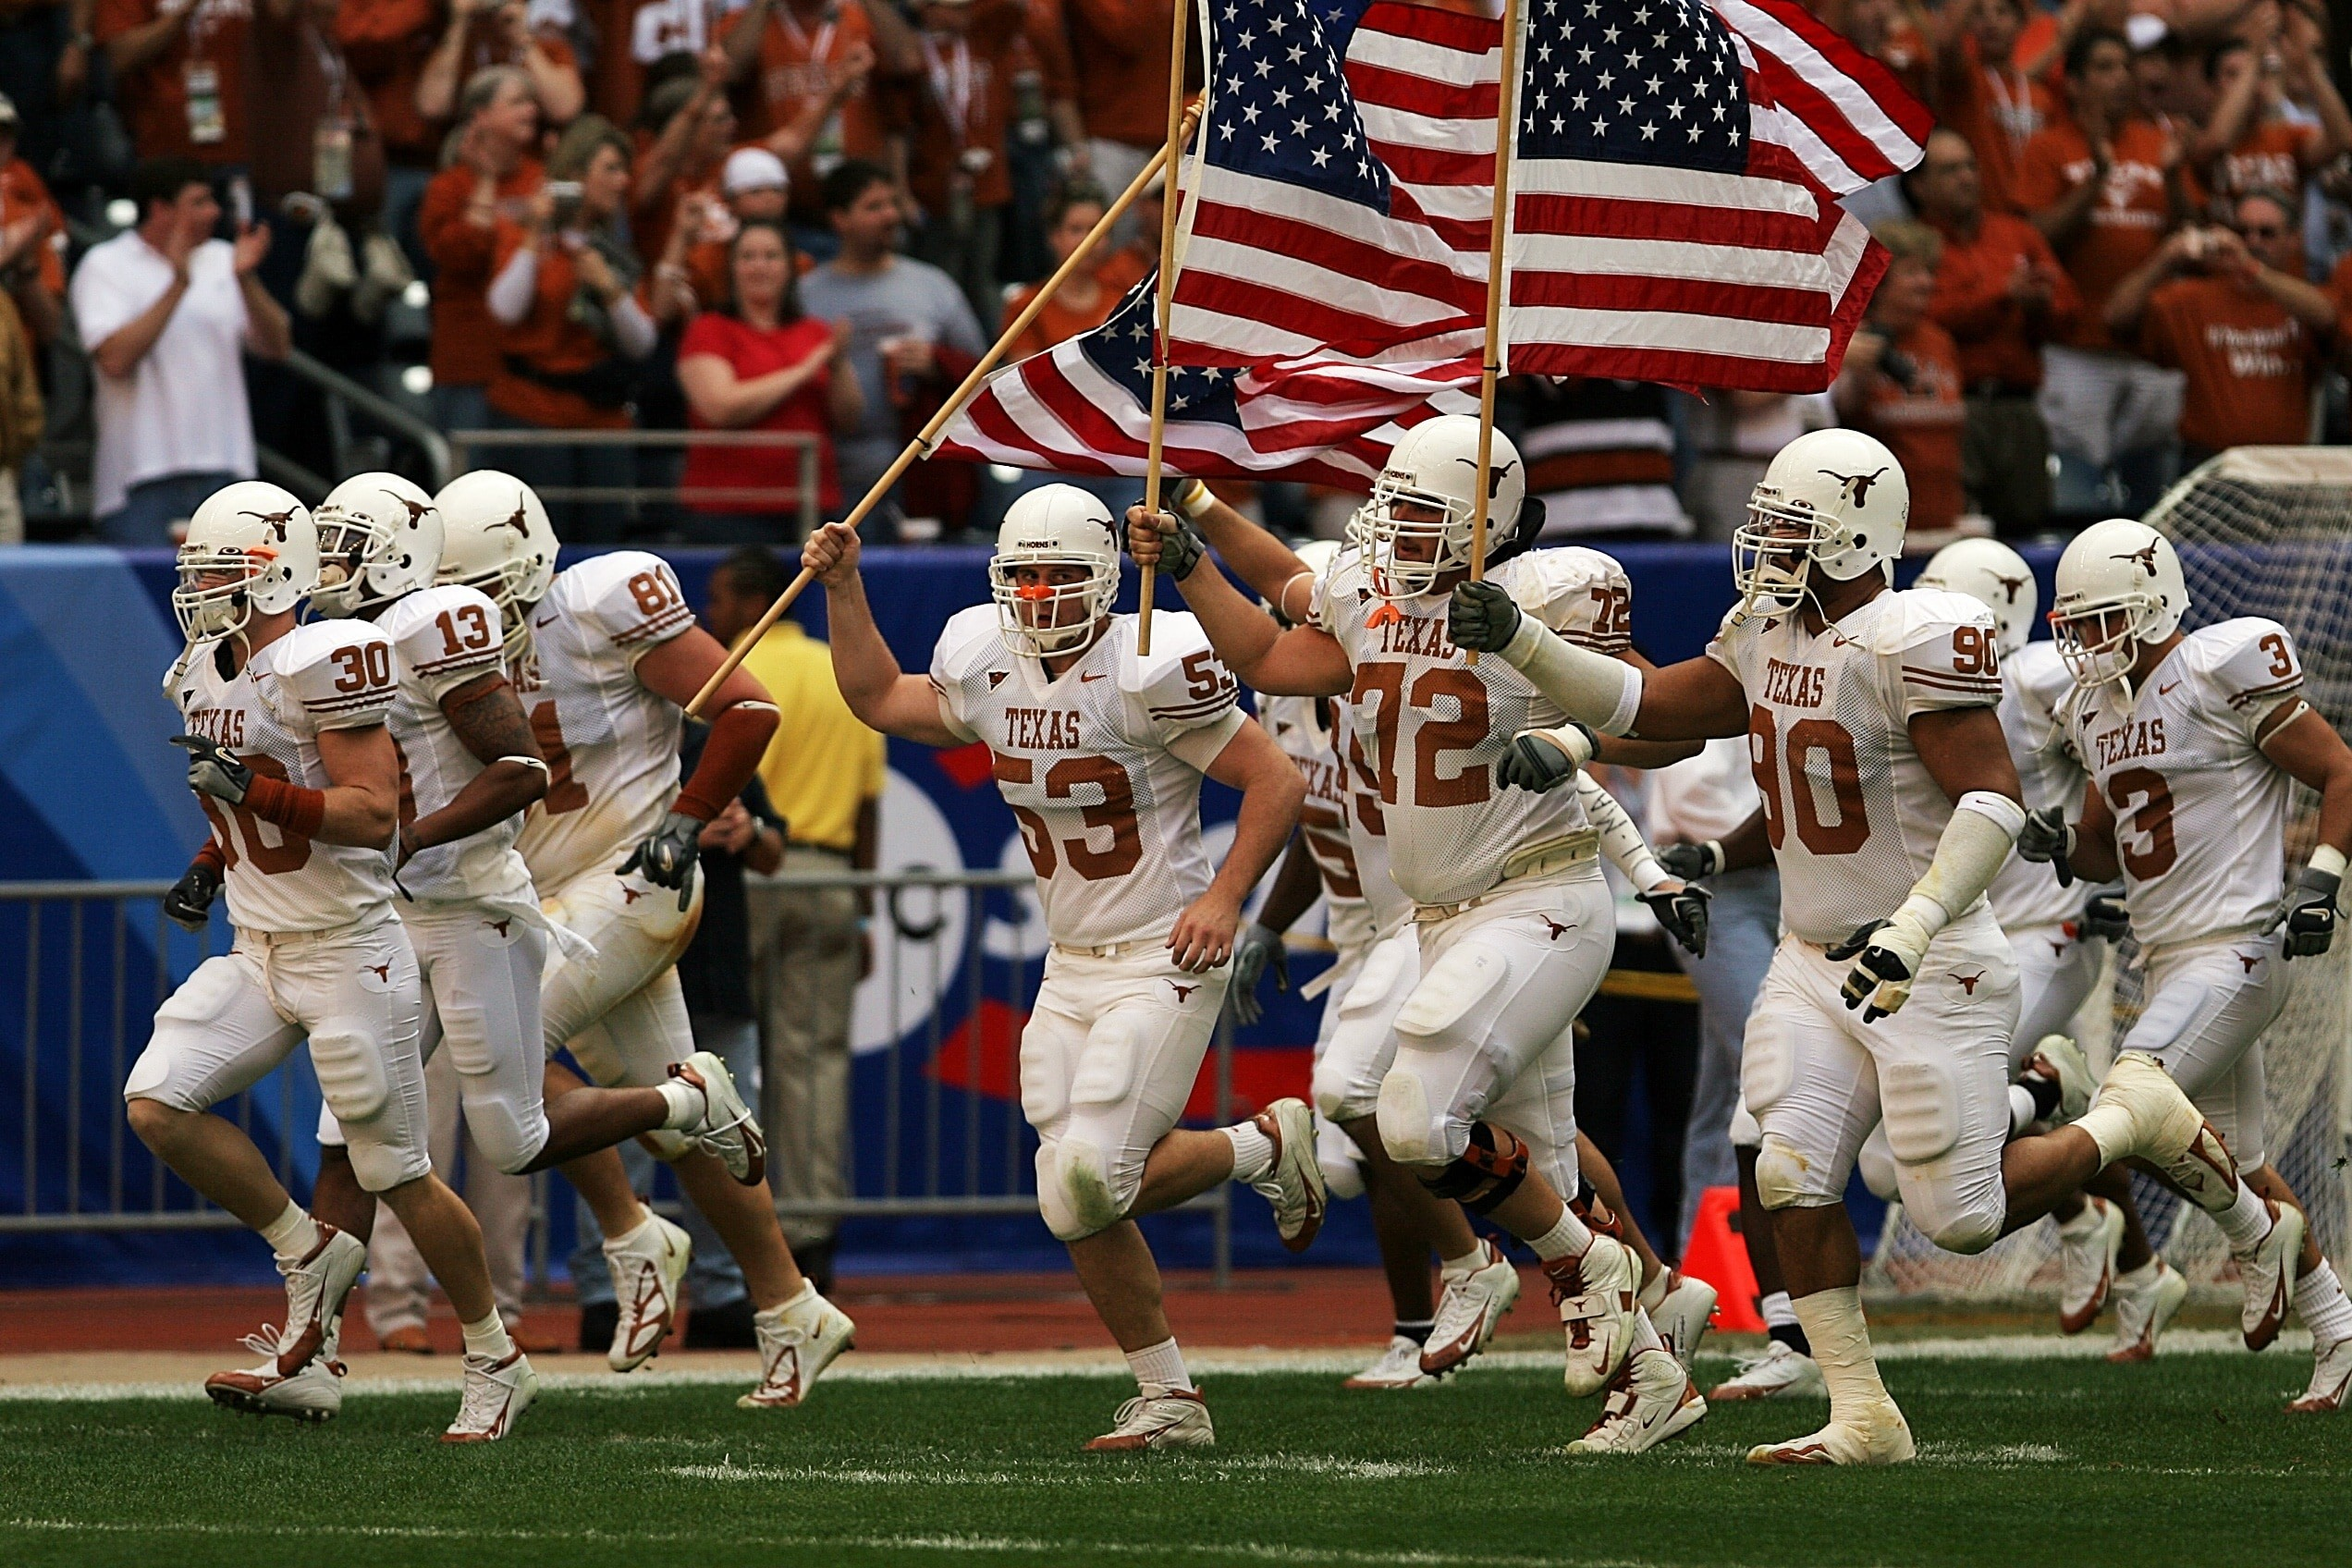 2544x1696 football in white jersey team running with american flag preview